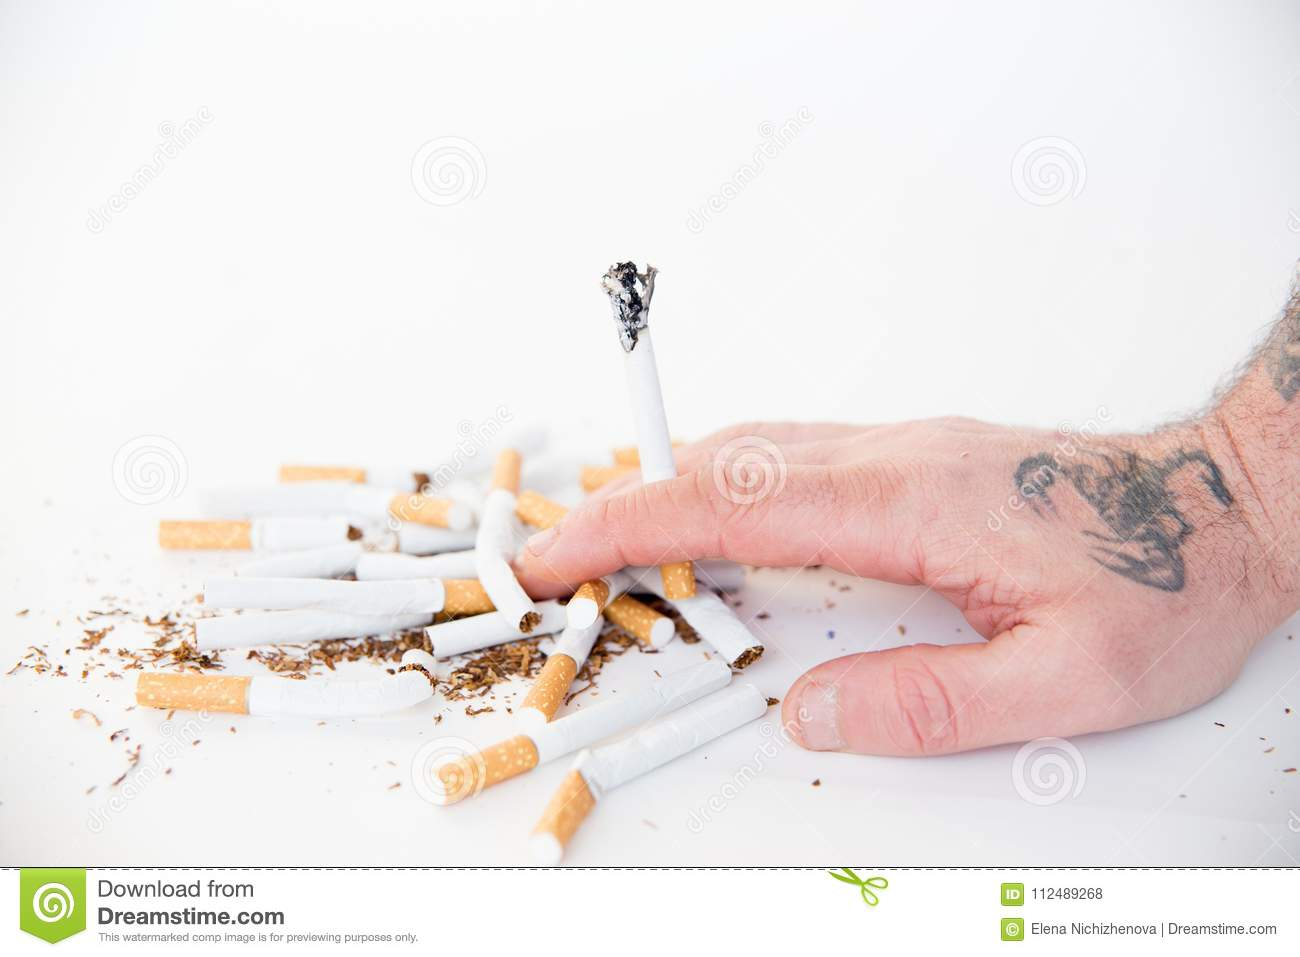 how to quit smoking without spending money